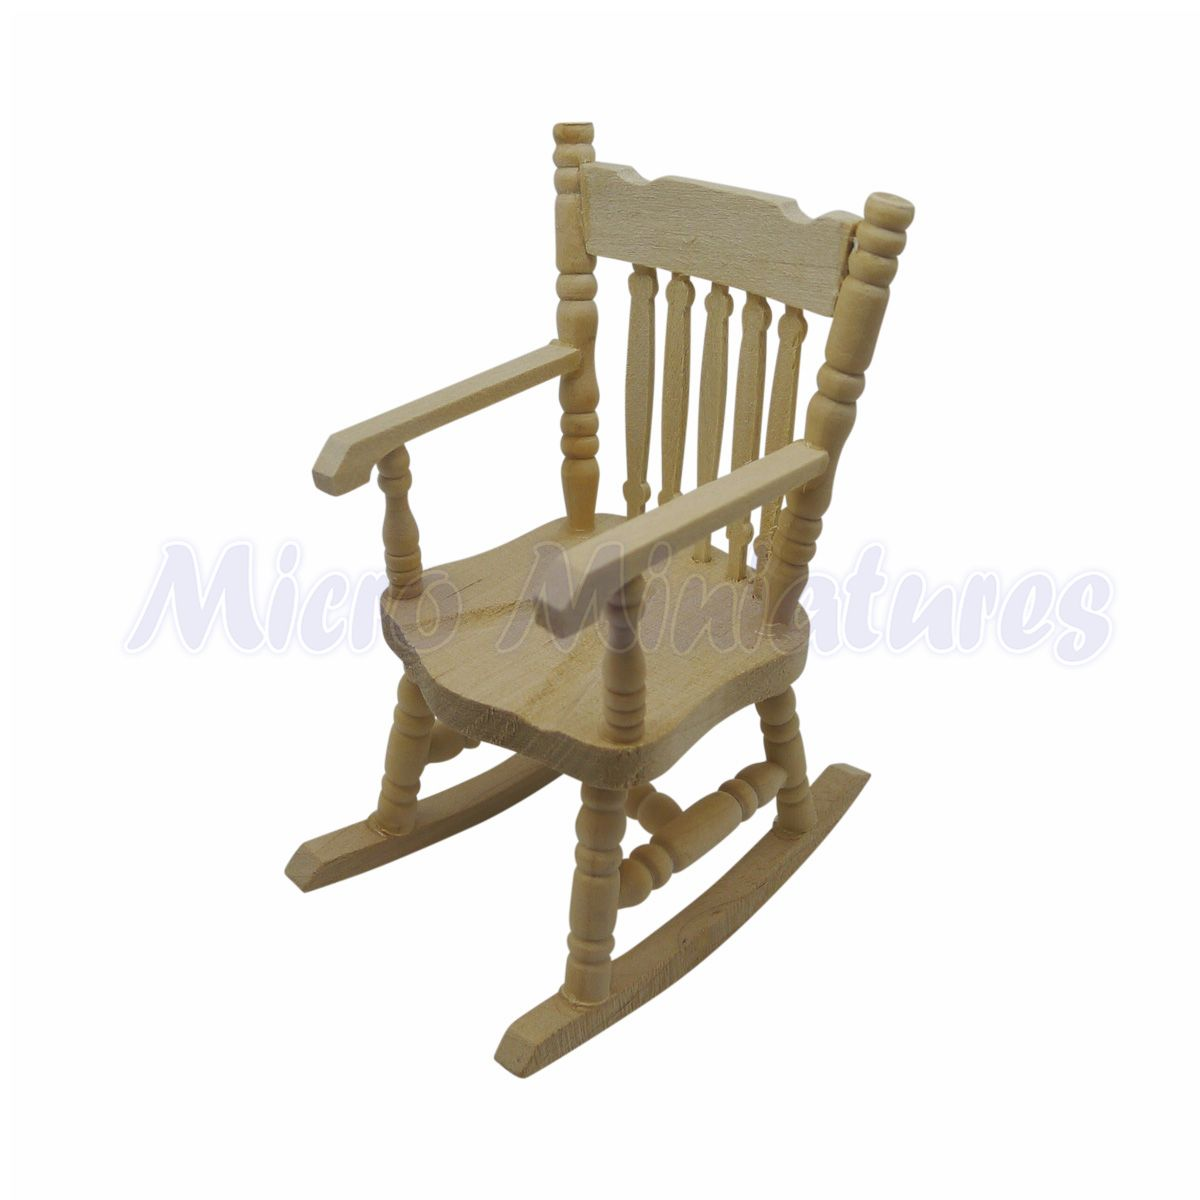 Enjoyable Details About Dolls House Rocking Chair 1 12Th Scale 00469 Andrewgaddart Wooden Chair Designs For Living Room Andrewgaddartcom